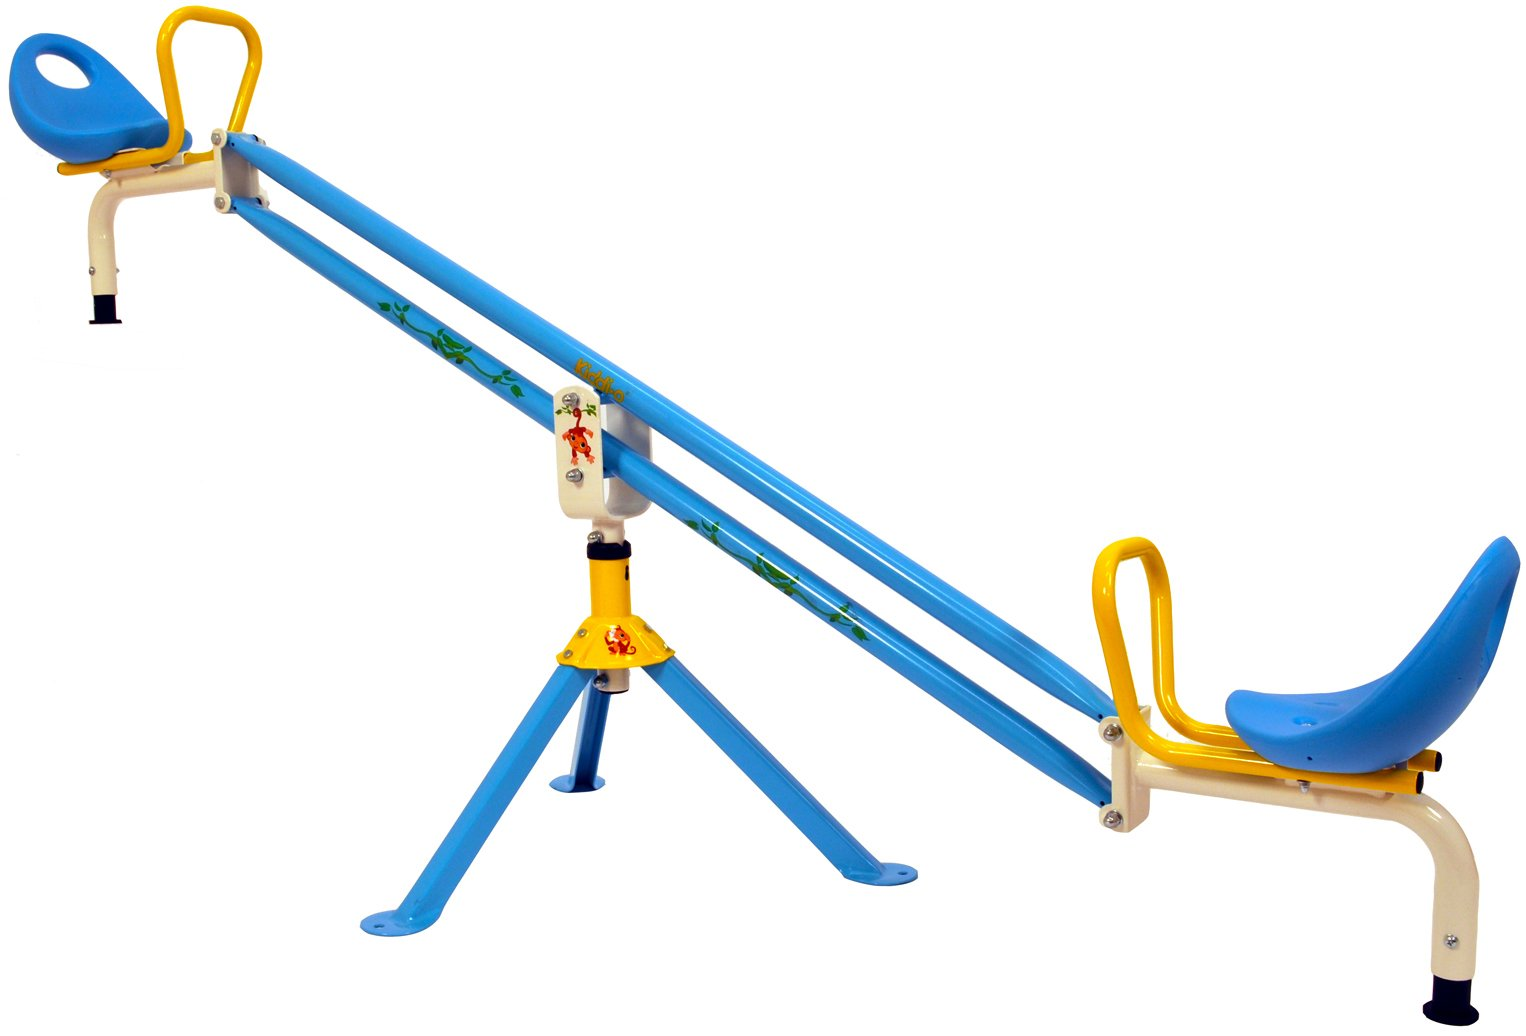 Kettler Kiddi-o by Home Playground Equipment: Outdoor Swivel Seesaw, Youth Ages 3+